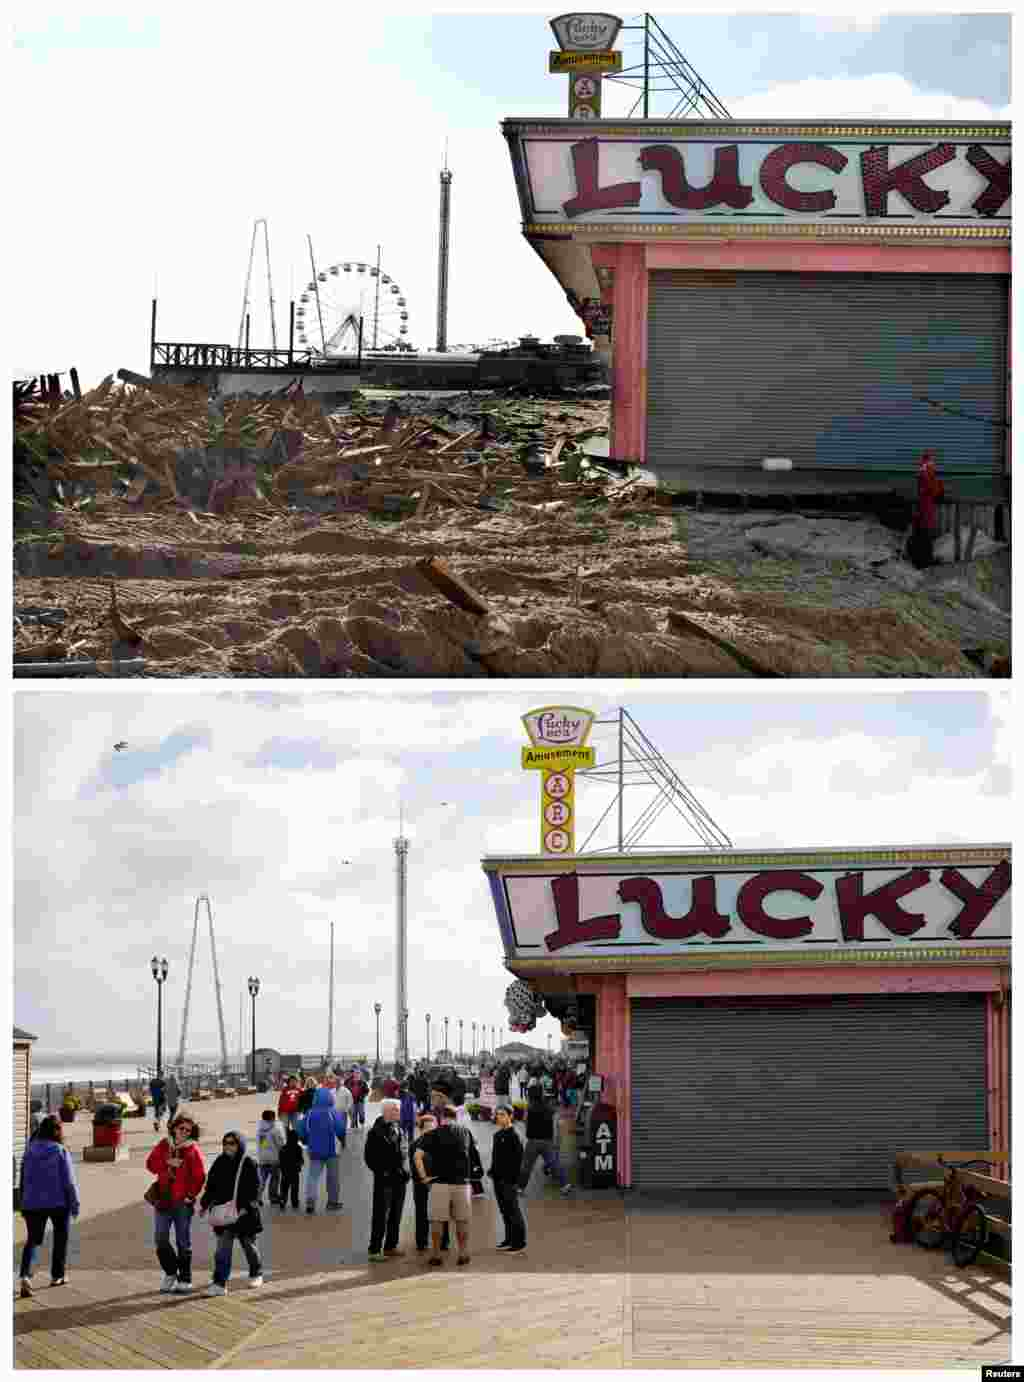 This combination of Nov. 22, 2012 and Oct. 13, 2013 photos shows debris left by Superstorm Sandy where the boardwalk had been in front of Lucky Leo's arcade in Seaside Heights, N.J. and the bottom photo shows people walking near Lucky Leo's one year later.